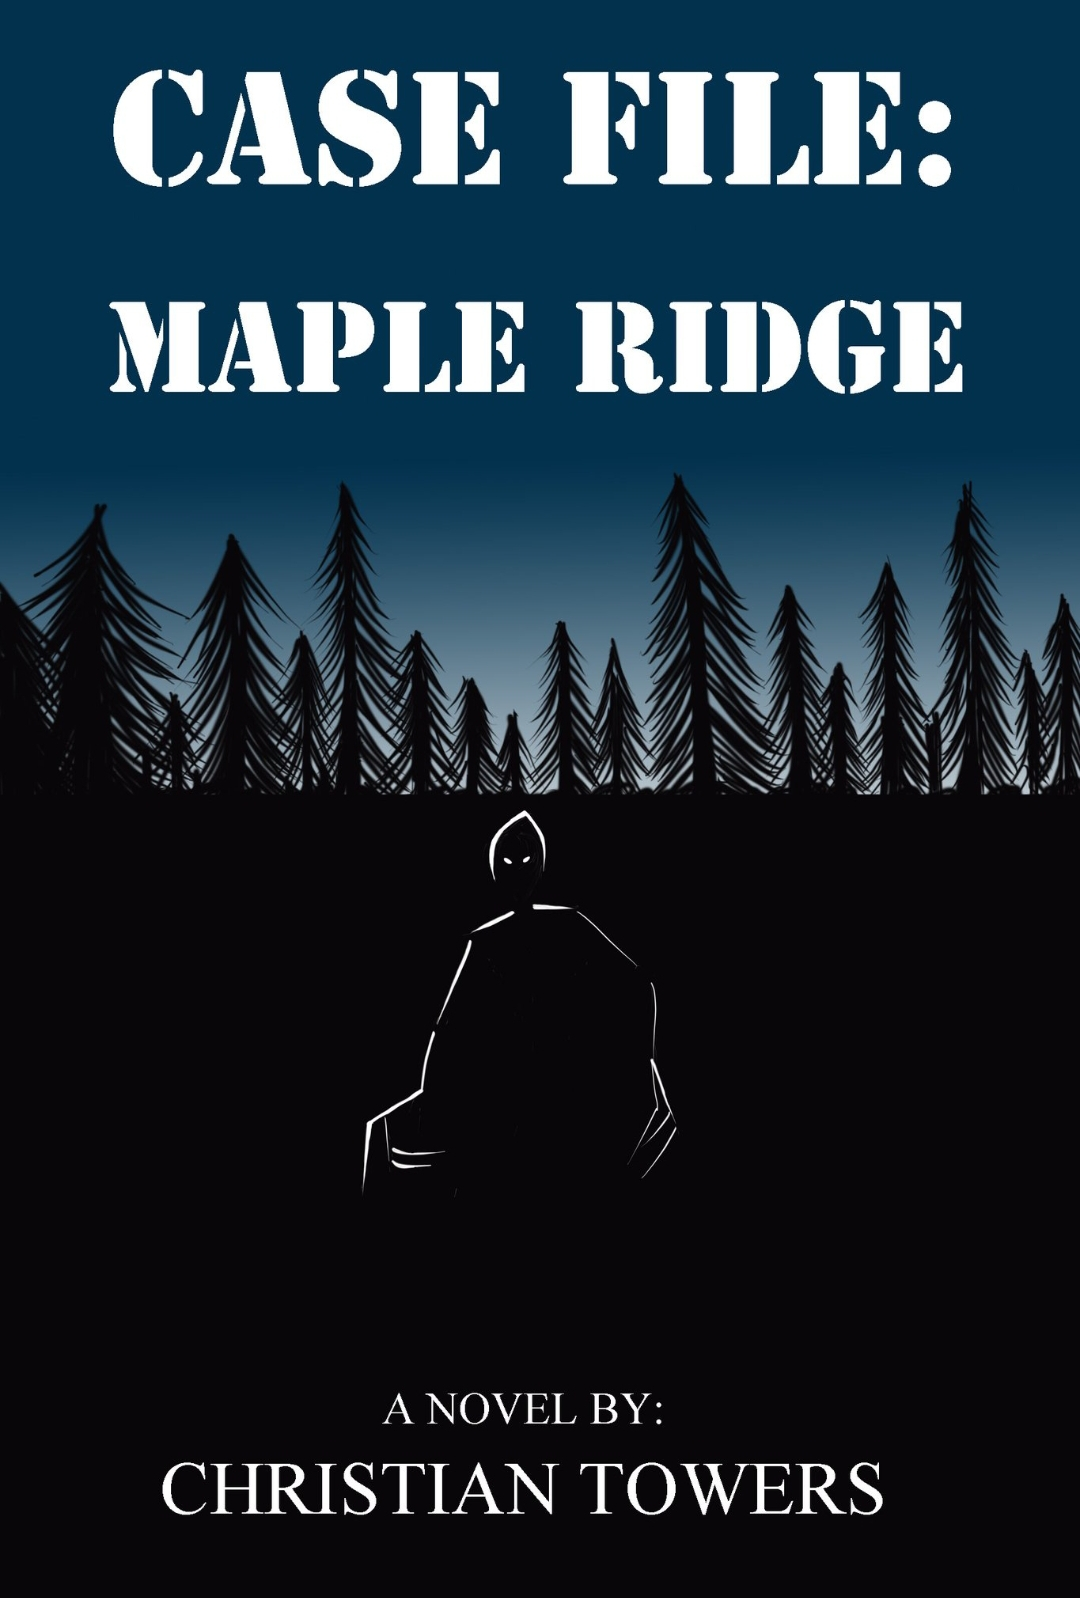 Case File: Maple Ridge by Christian Towers